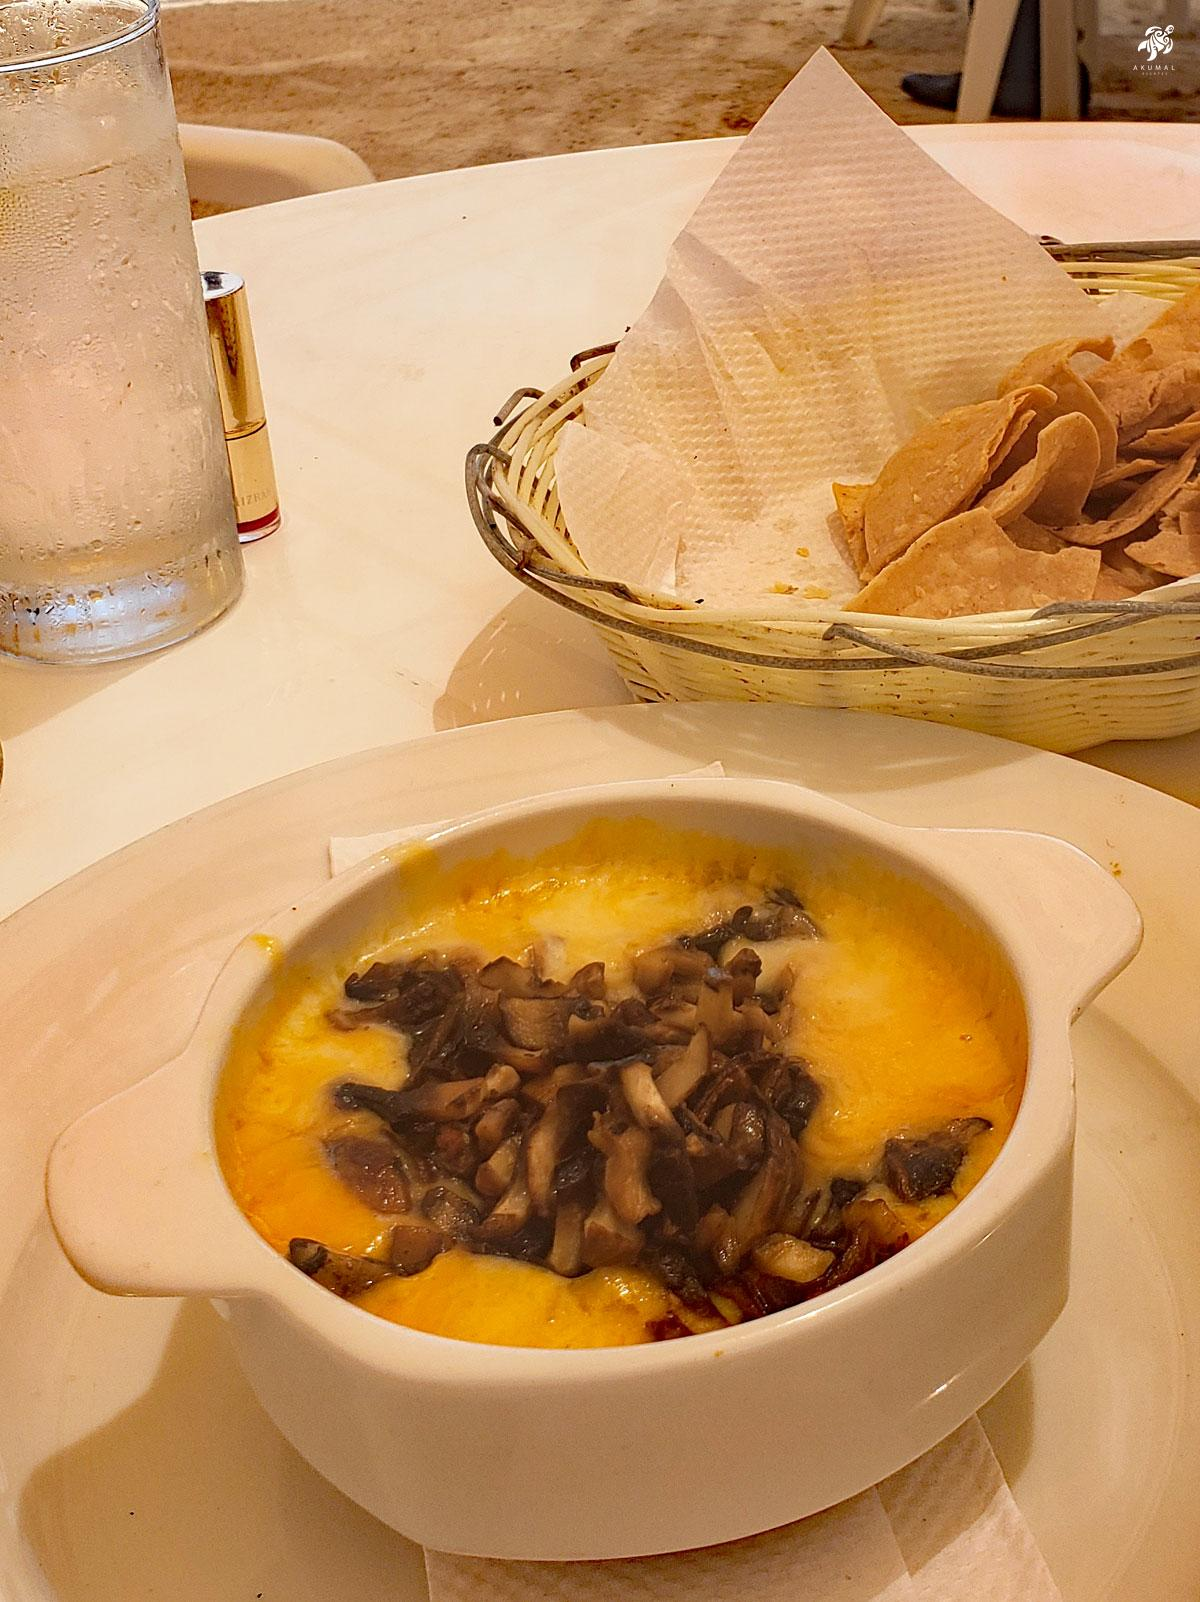 Queso fundito (melted mexican cheese) with mushrooms